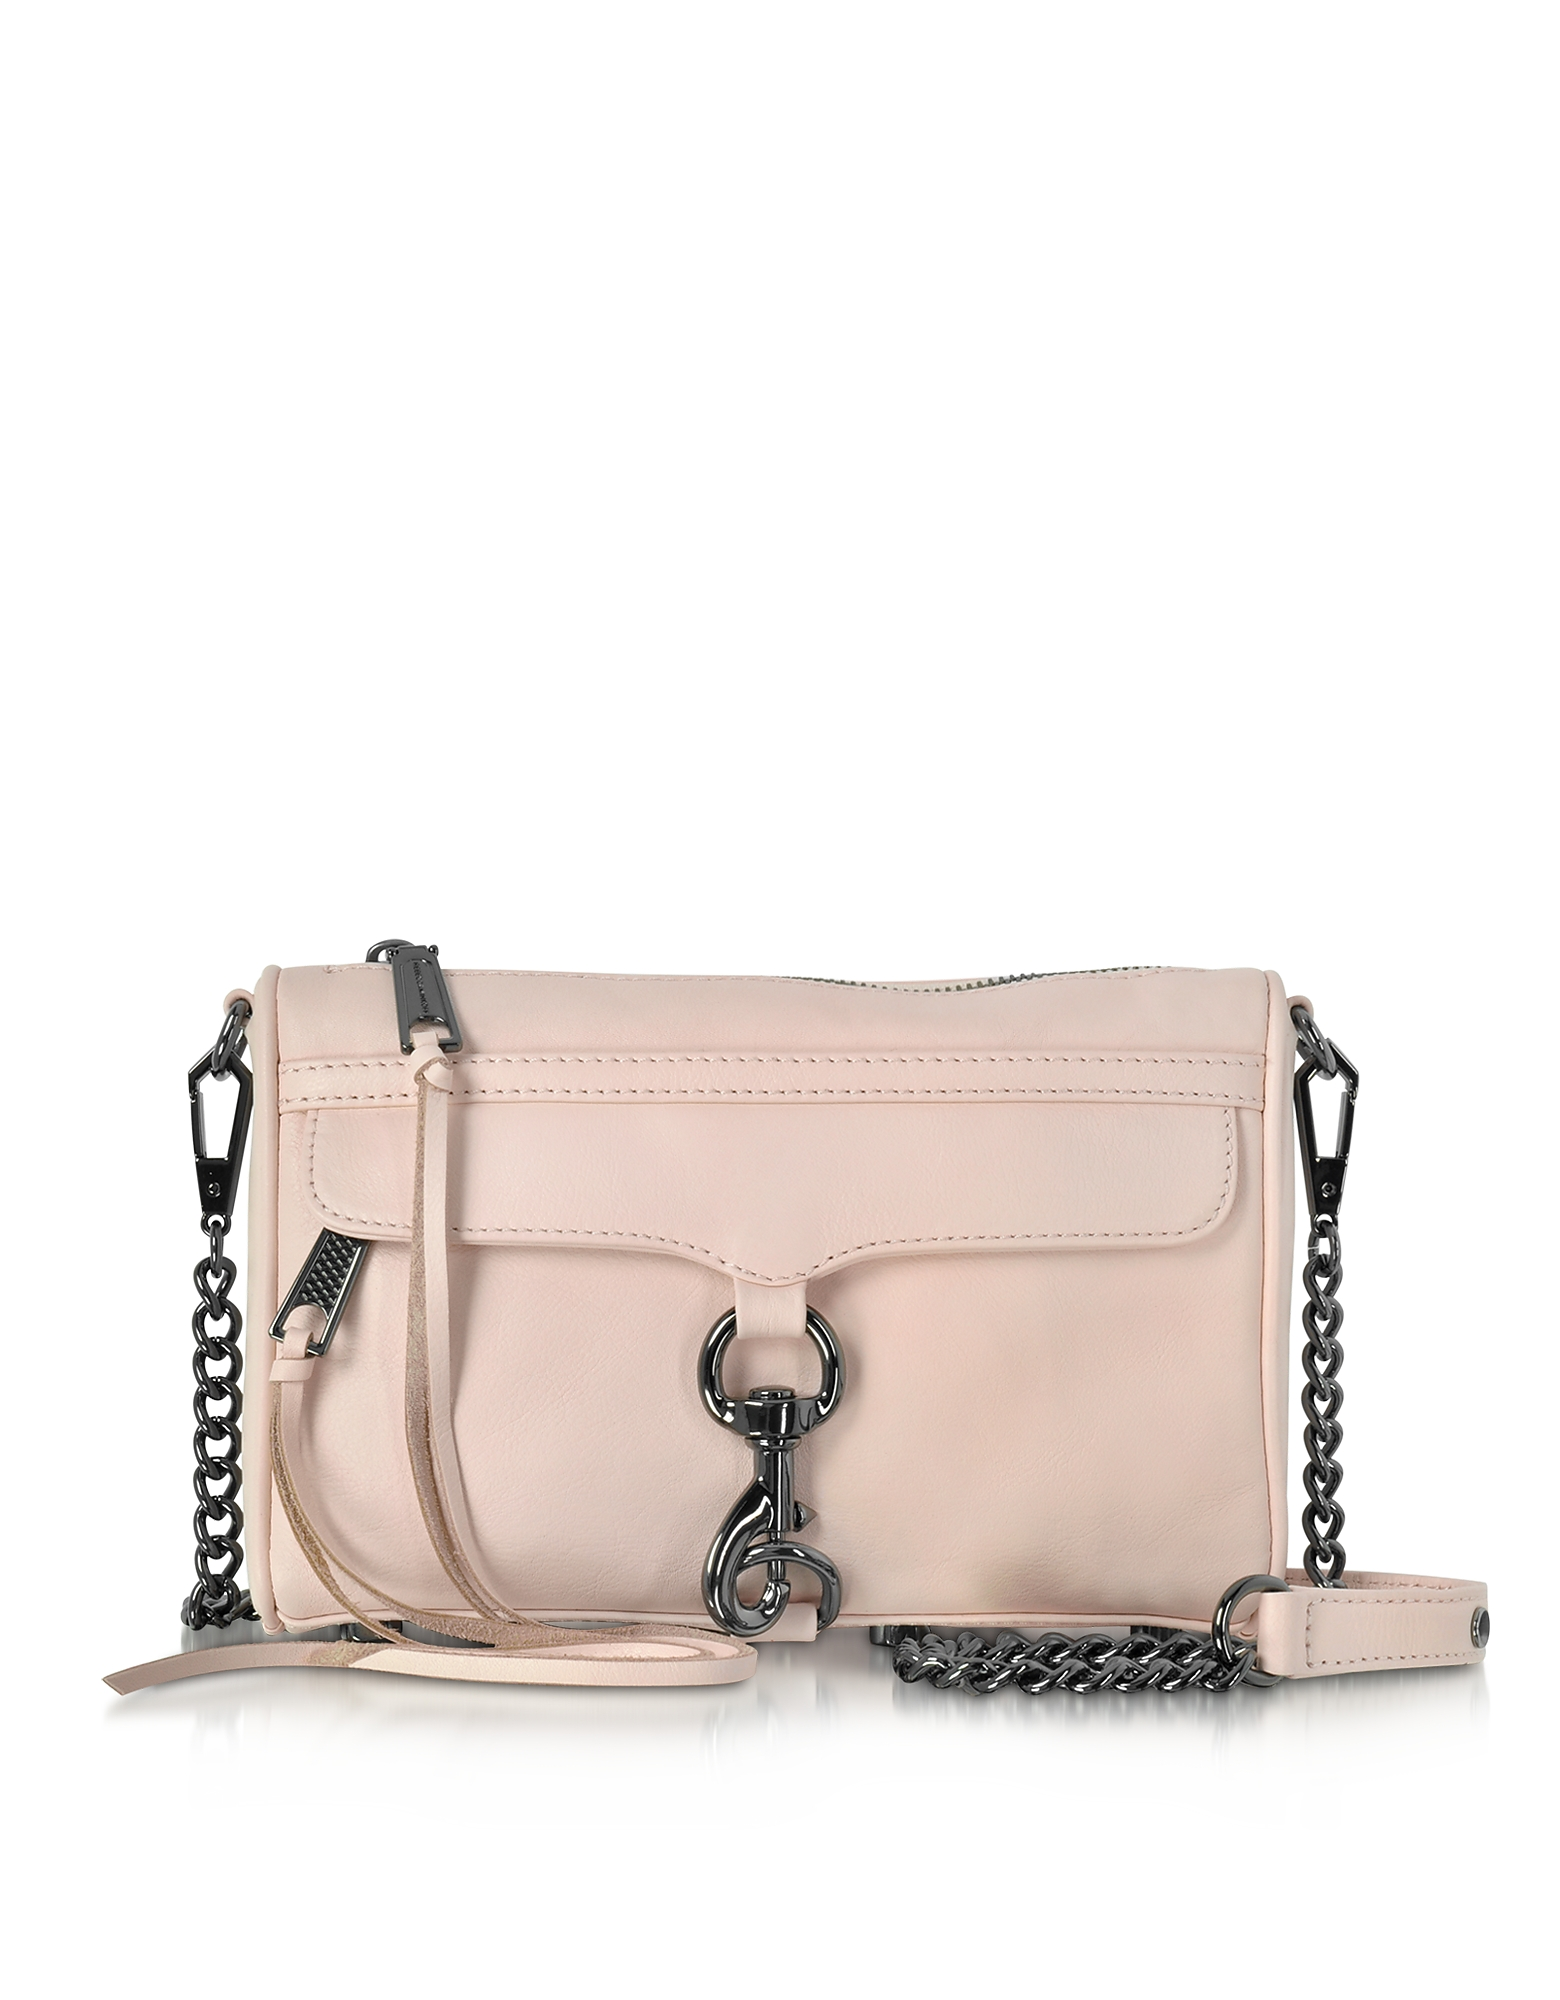 Rebecca Minkoff Soft Blush Leather Mini M.A.C. Crossbody Bag